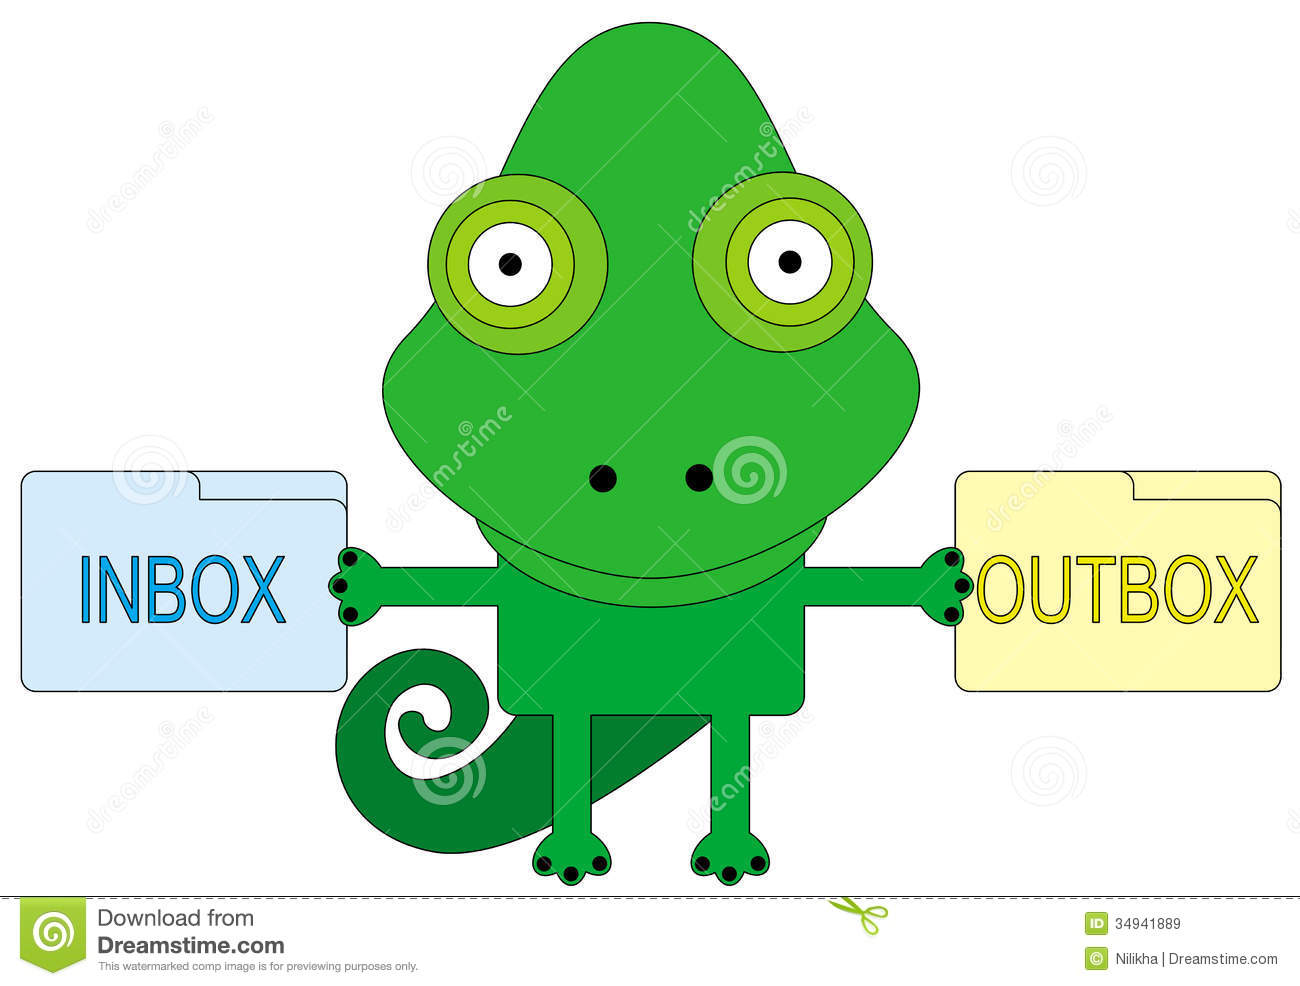 Inbox And Outbox Royalty Free Stock Images - Image: 34941889